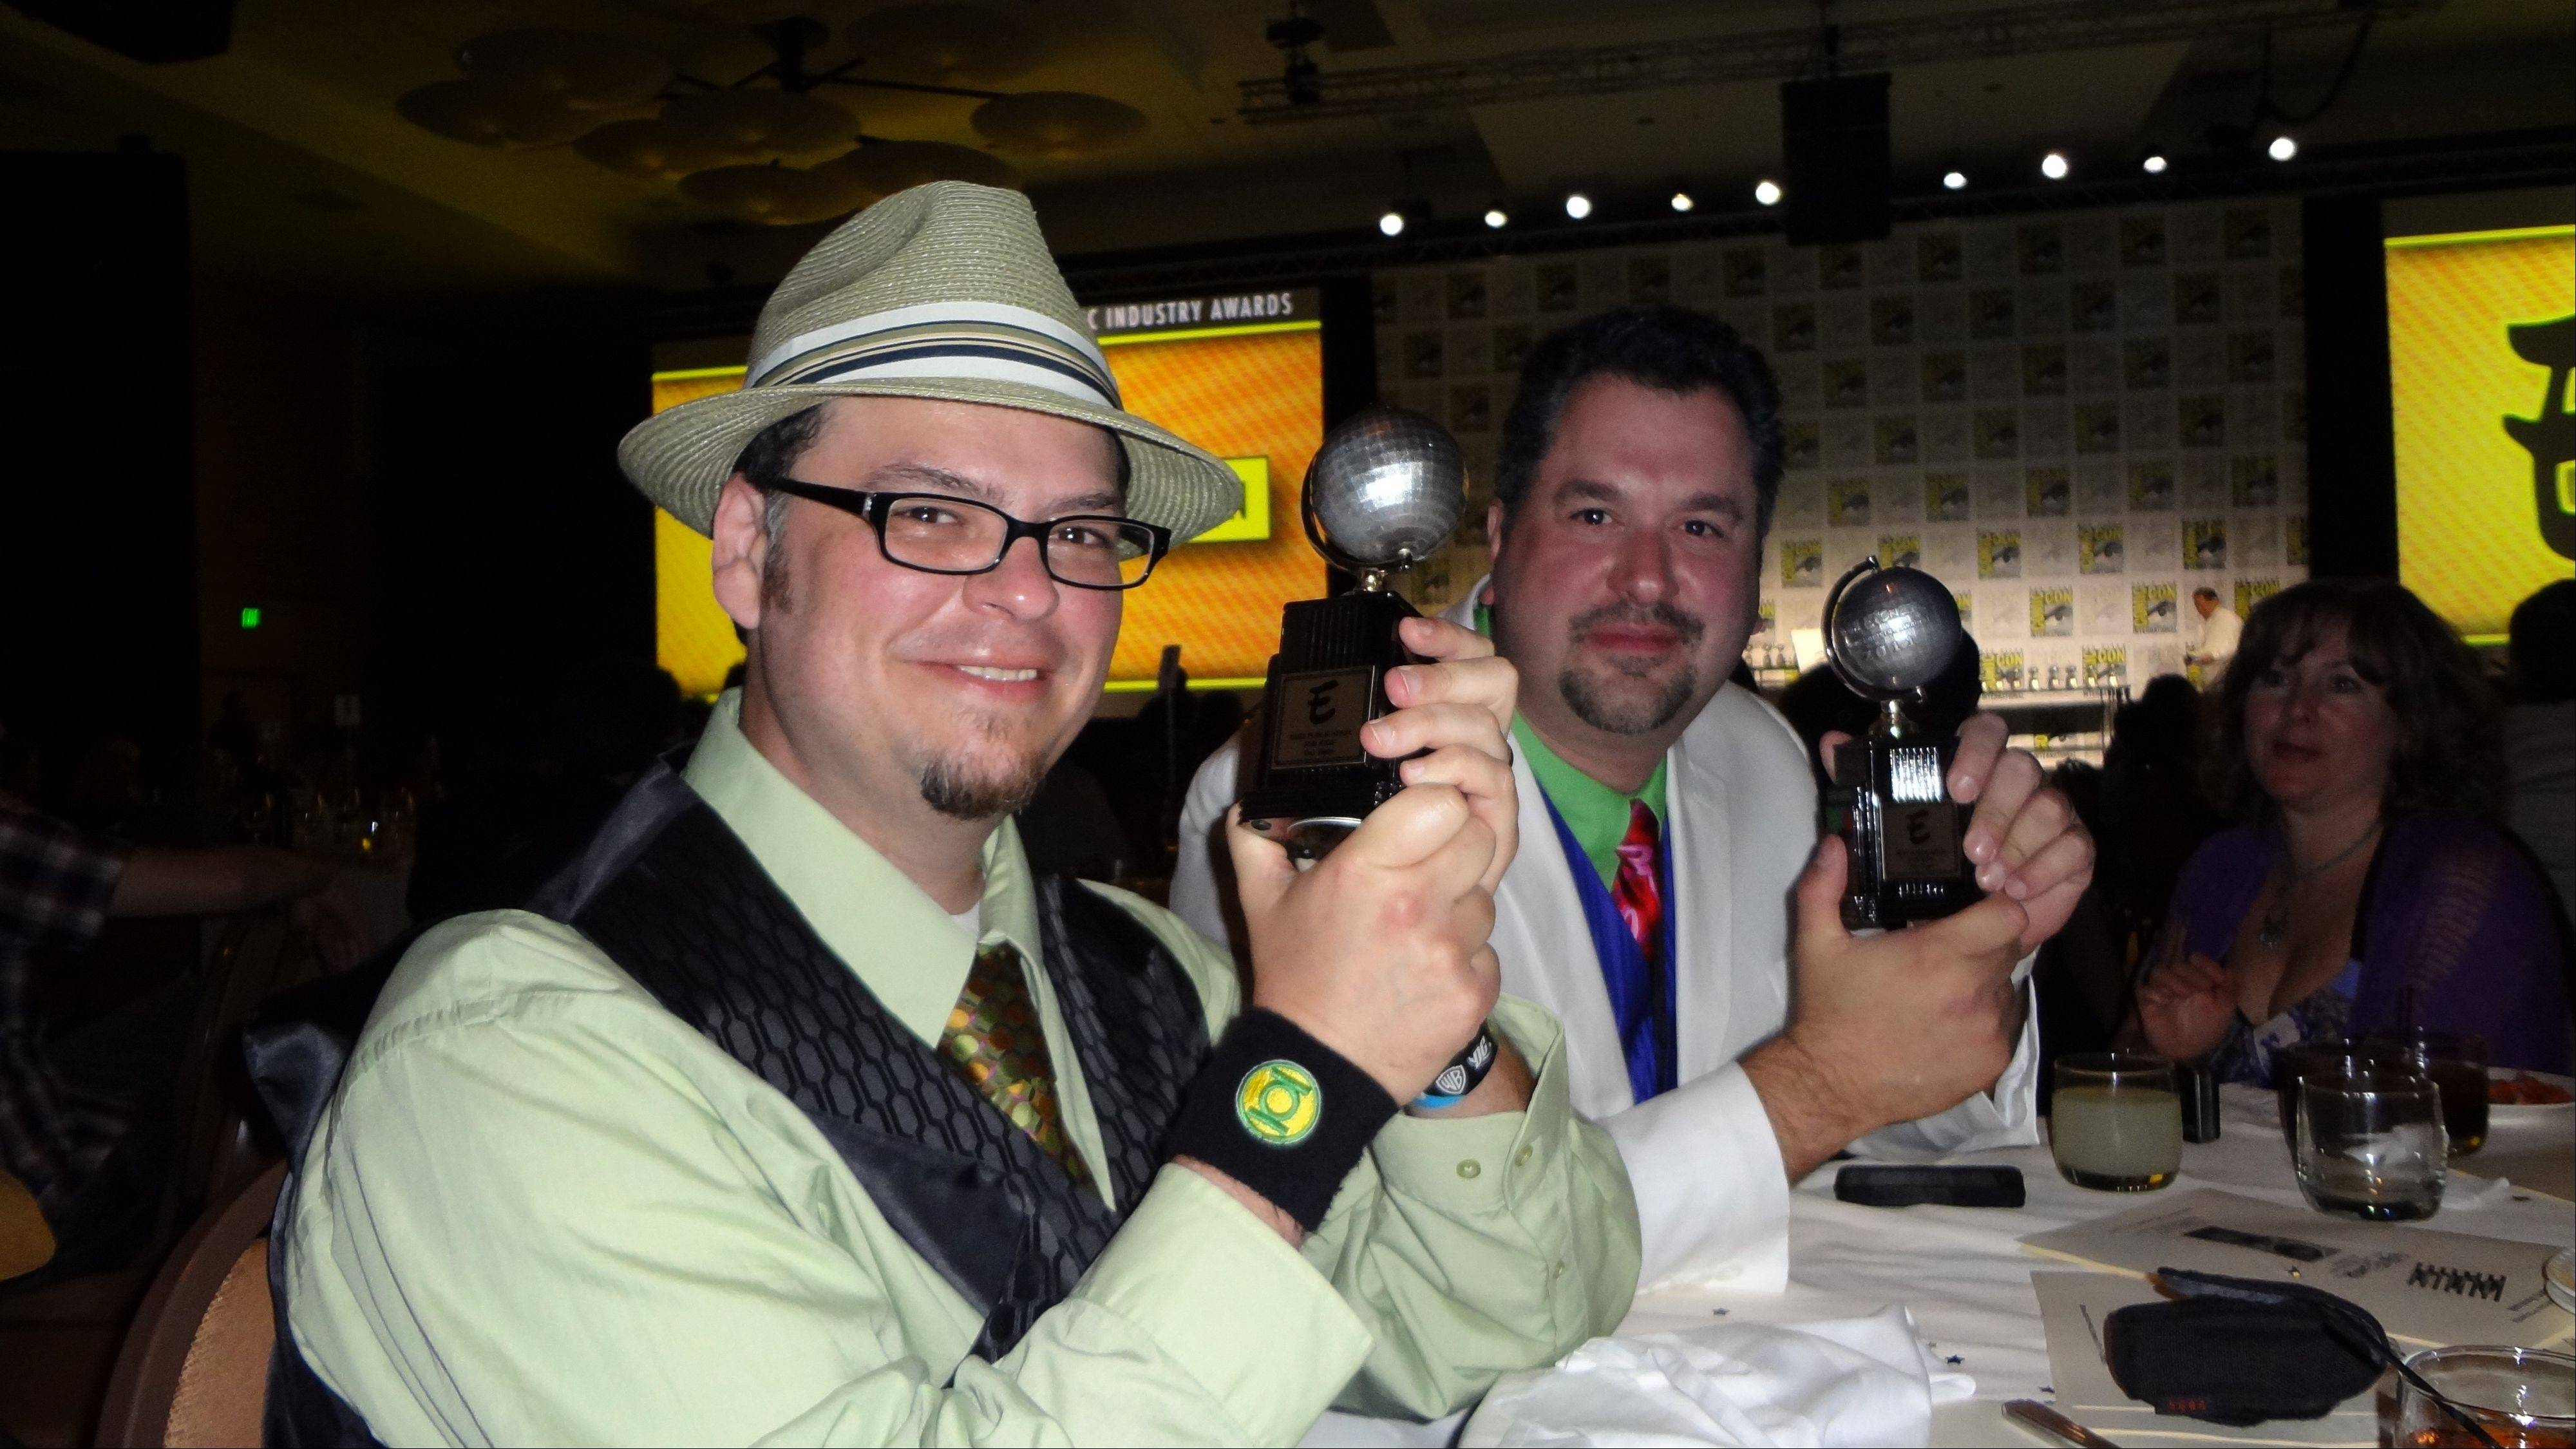 Art Baltazar and Franco Aureliani pose on July 22 at the San Diego Comic-Con with their new Eisner Awards.